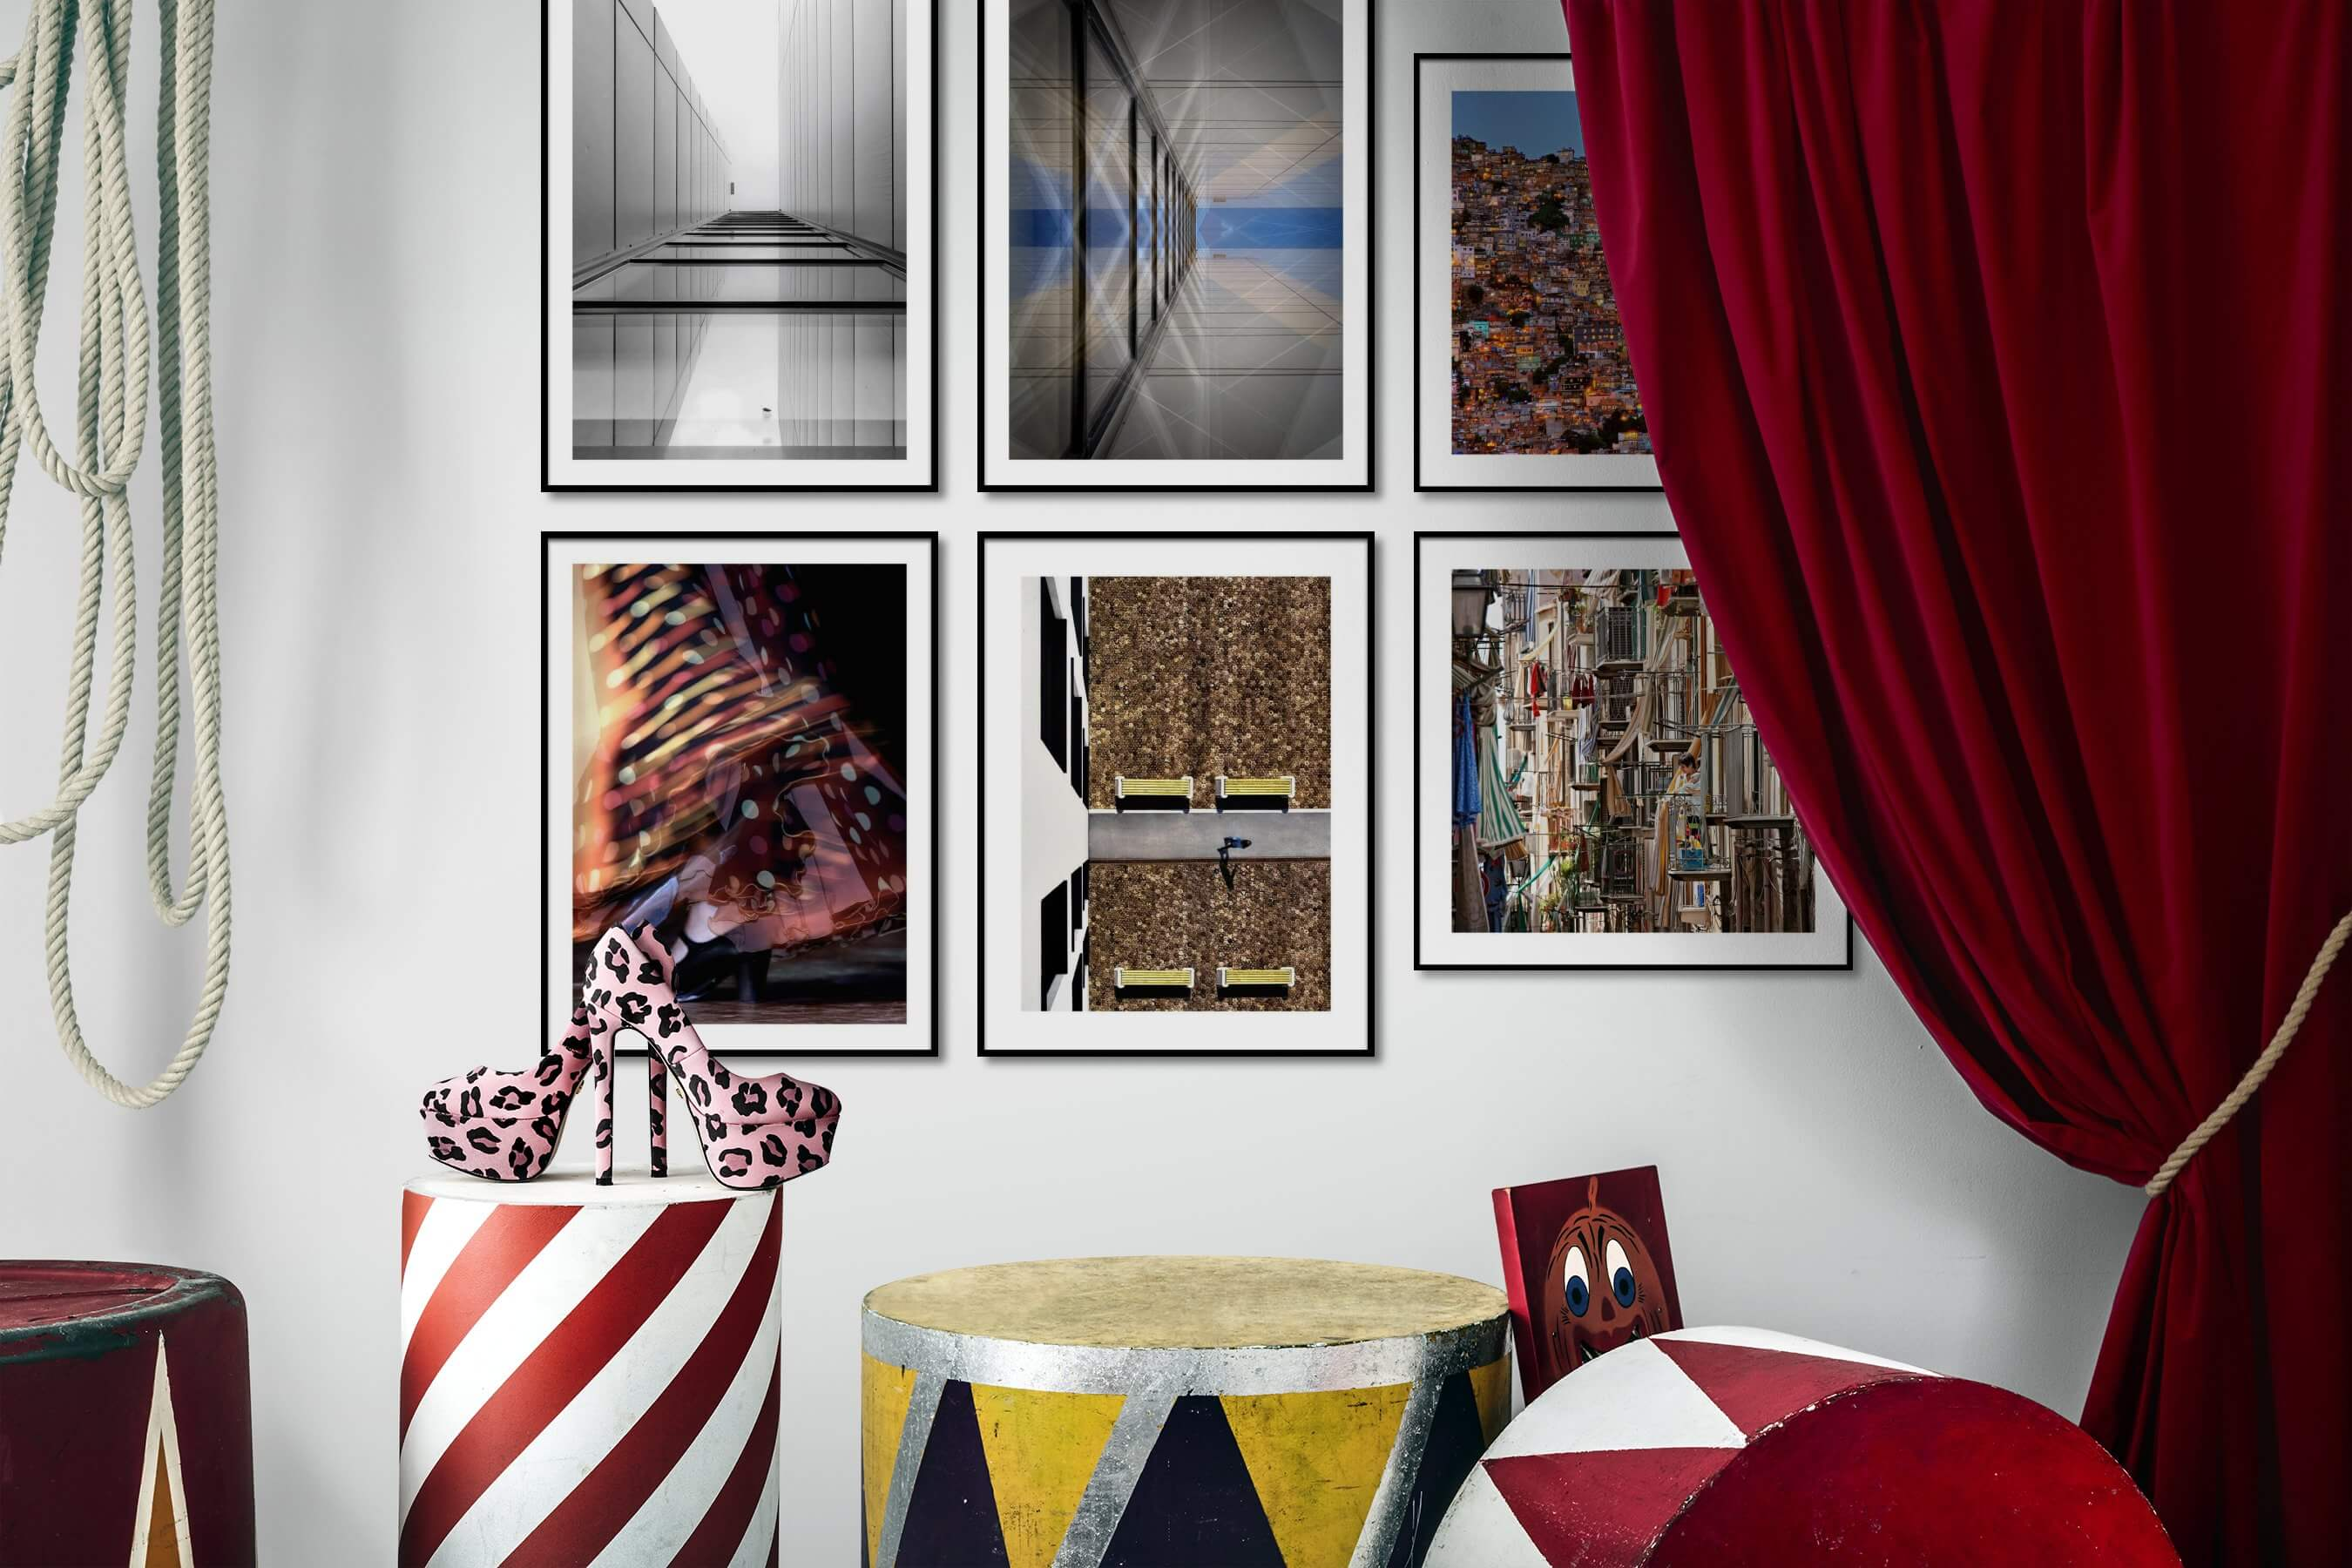 Gallery wall idea with six framed pictures arranged on a wall depicting Black & White, For the Moderate, Fashion & Beauty, City Life, and For the Maximalist